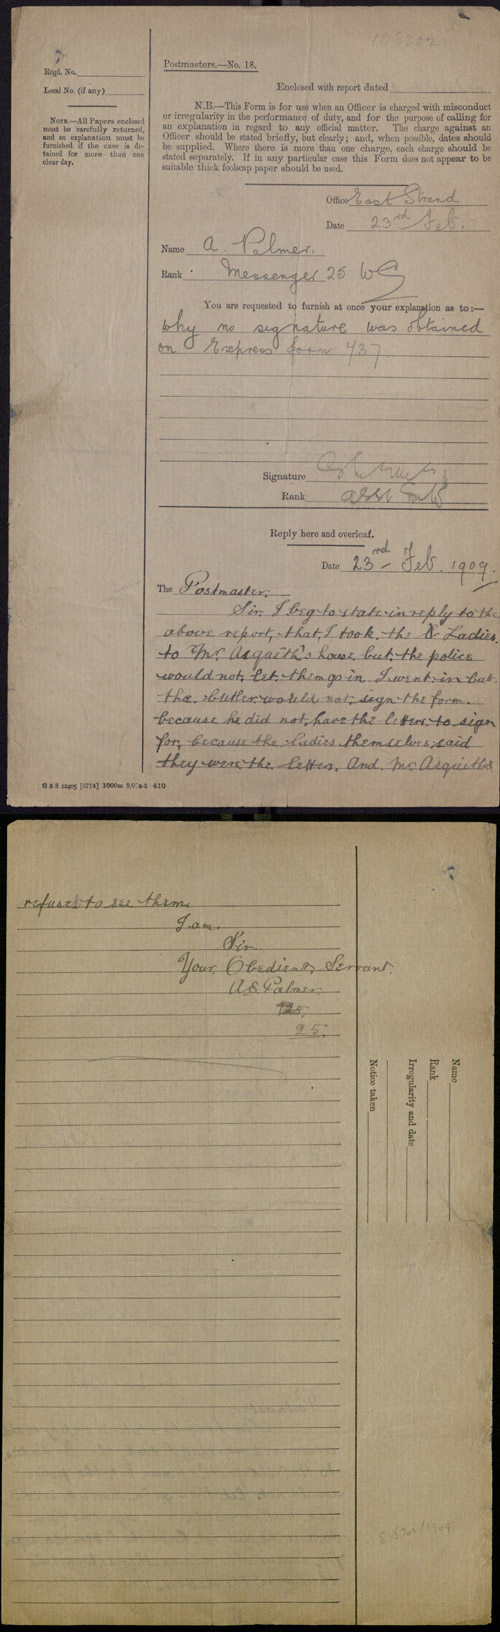 A.S Palmer's report explaining why he did not obtain a signature for the delivery of the suffragettes, 23rd February 1909. (POST 30/1655a)